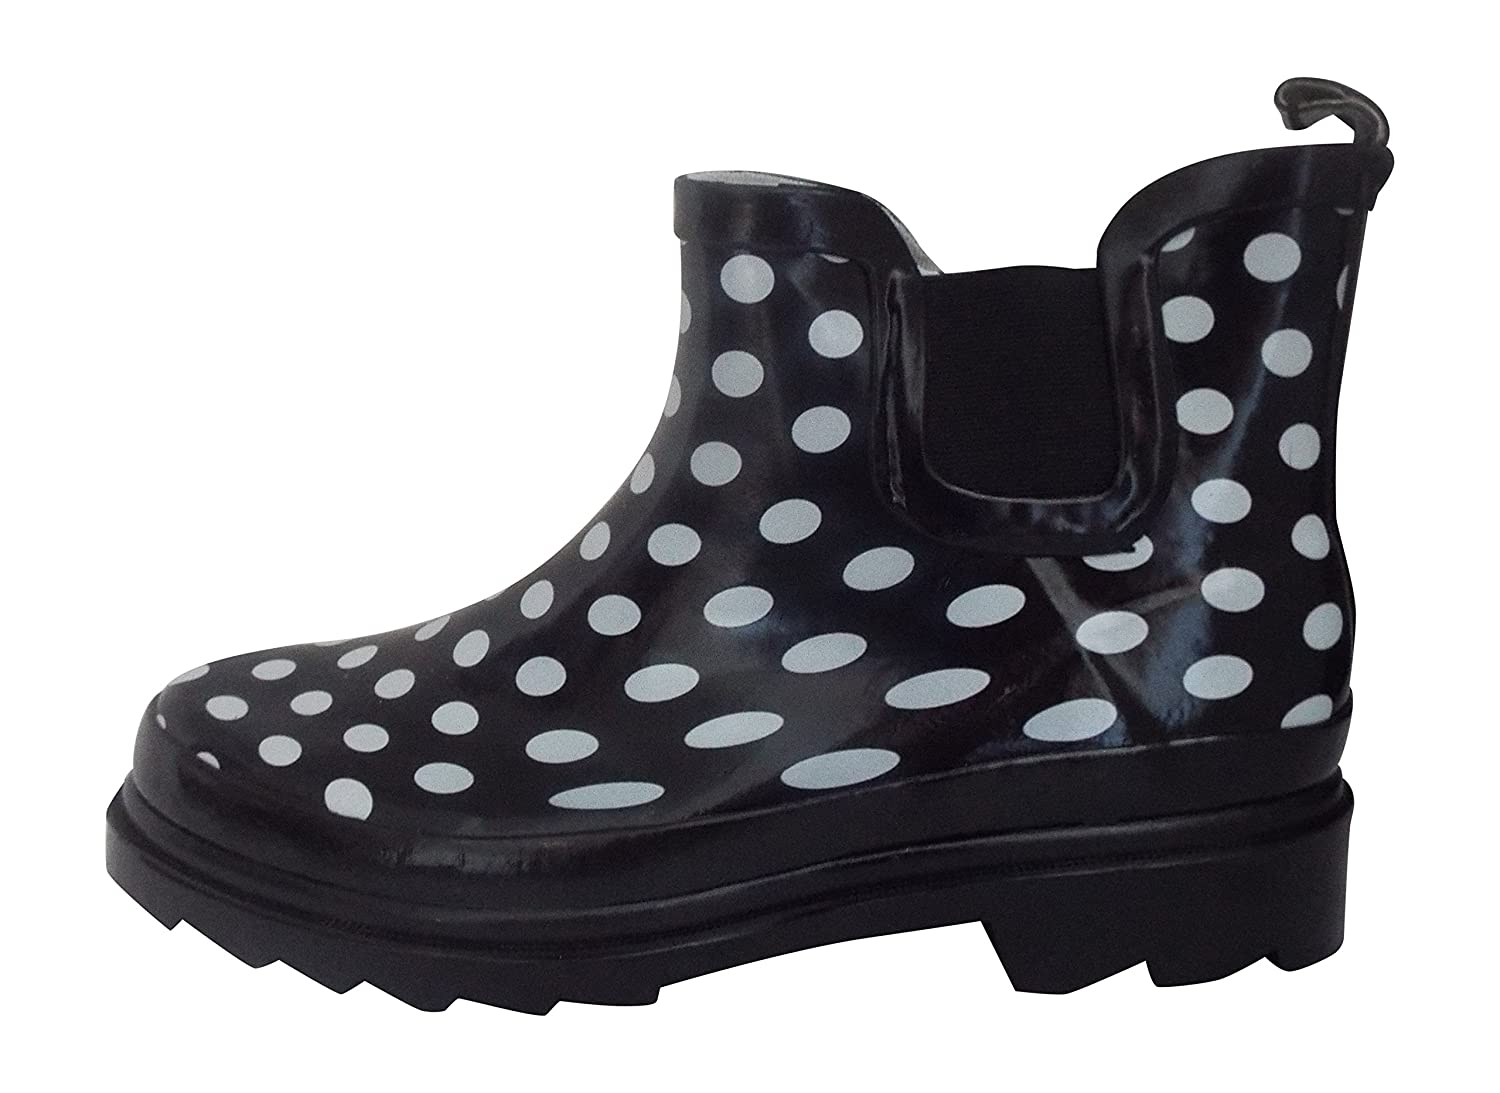 Women's Short Ankle Rubber Rain Boots Multiple Styles Available B00ZSNUGEY 7 B(M) US|Polka Dot